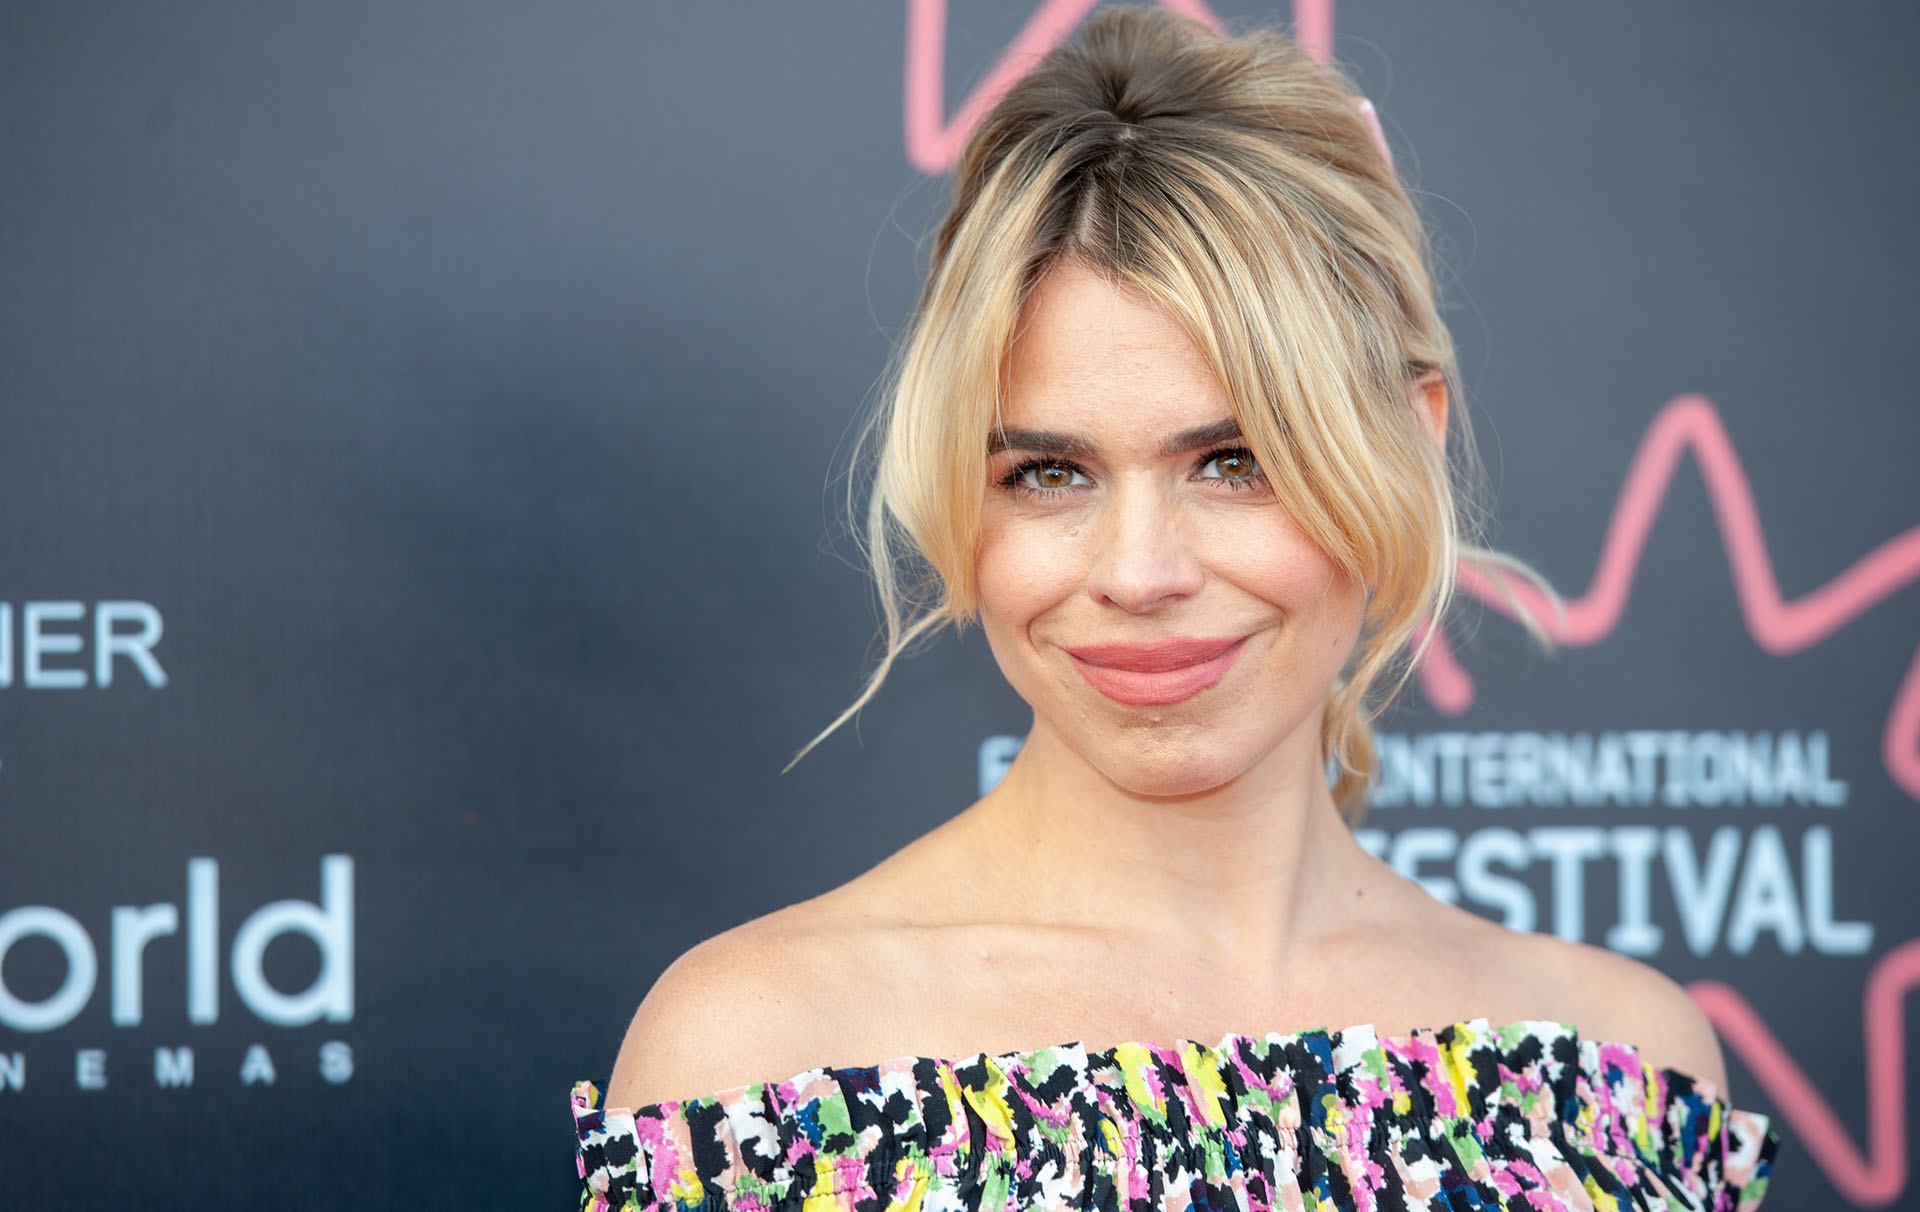 Billie Piper Welcomes Baby Girl With Partner Johnny Lloyd